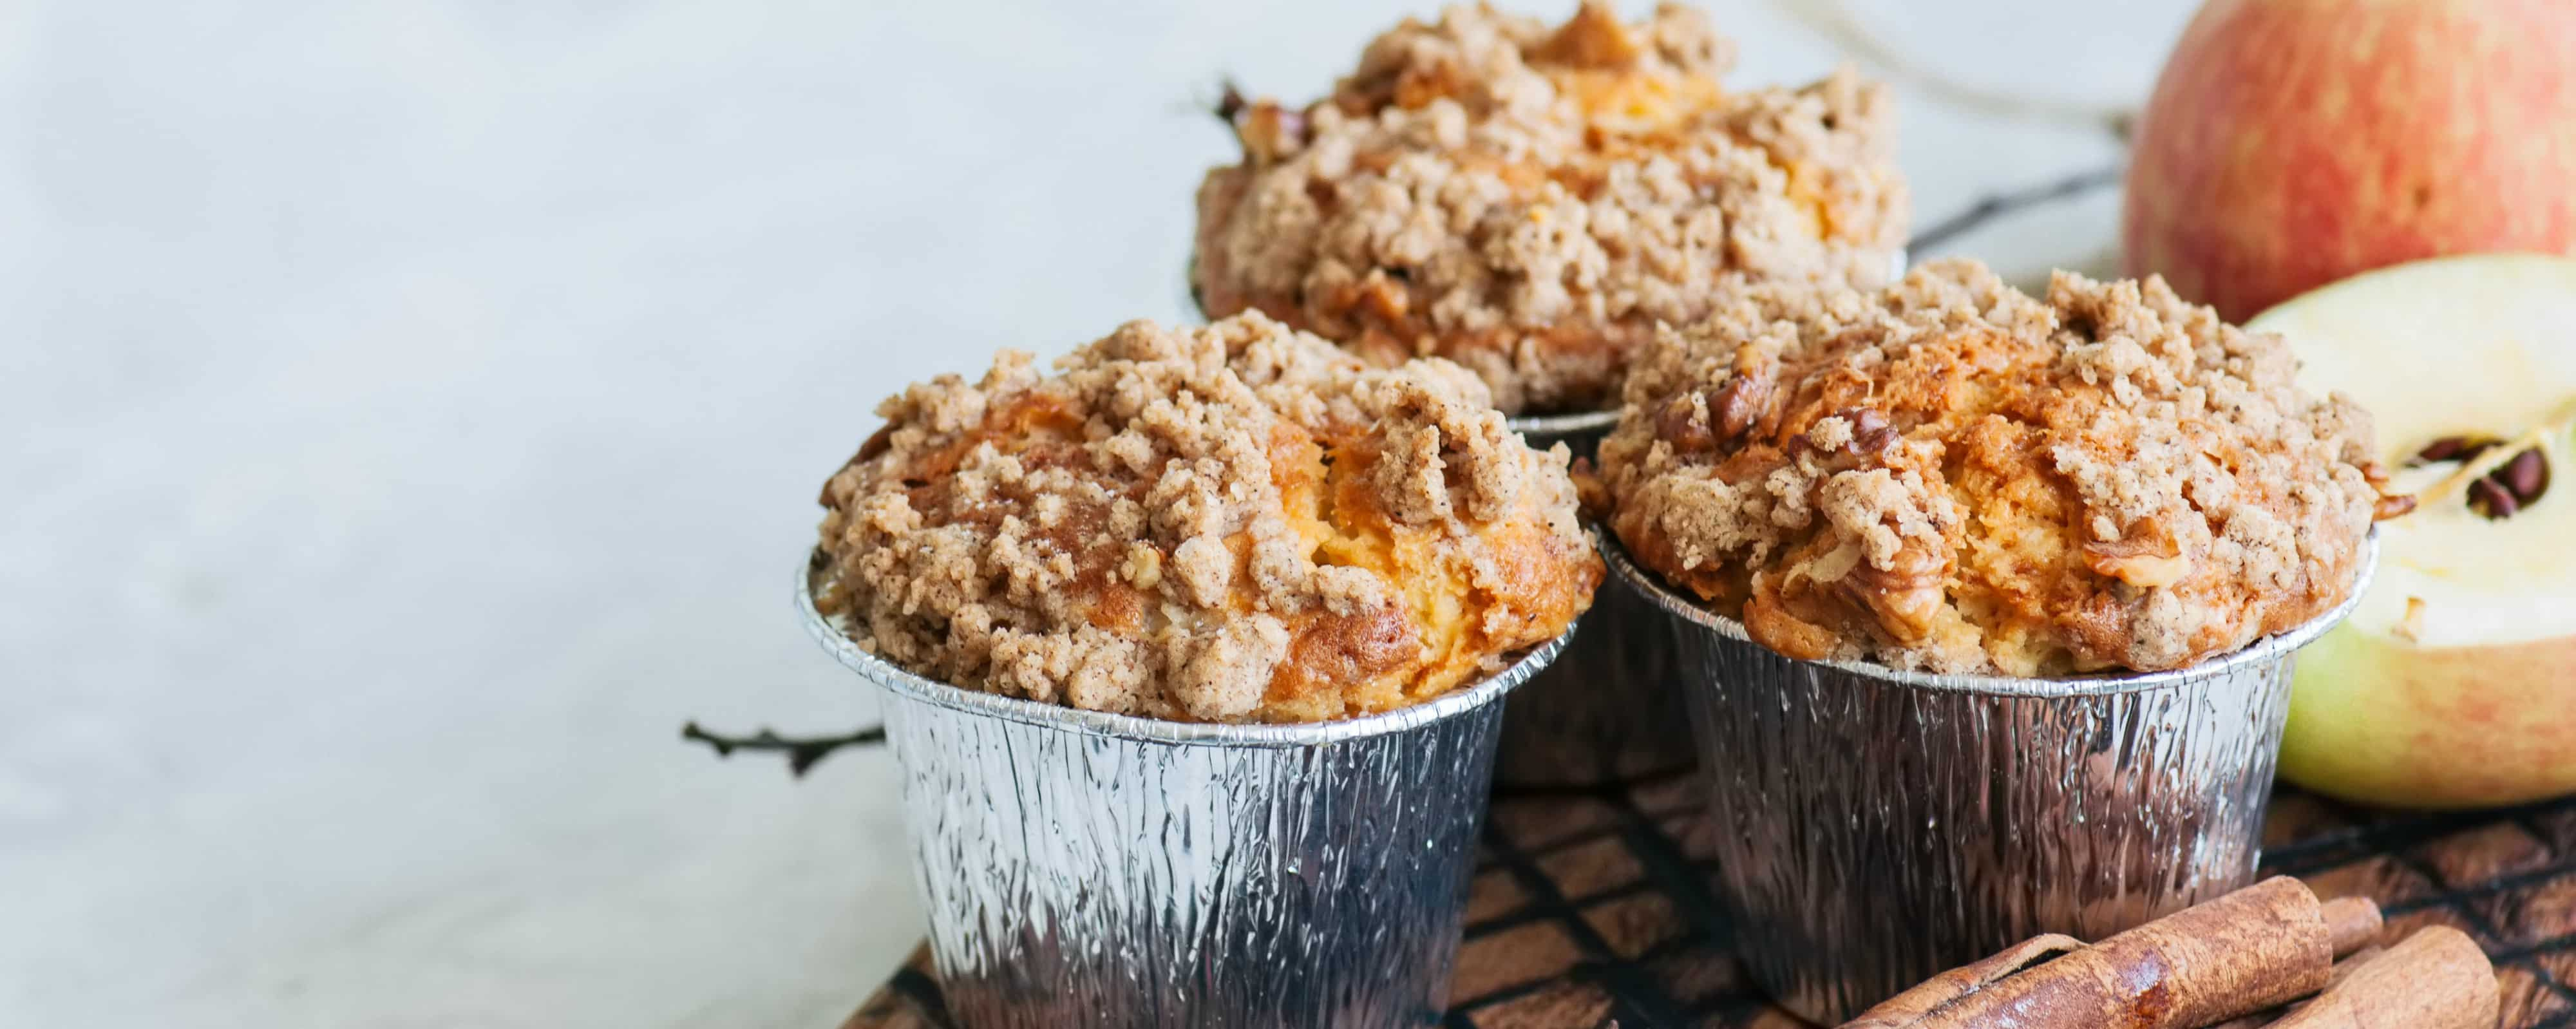 Fall Flavors Breakfast Muffin DormTopper